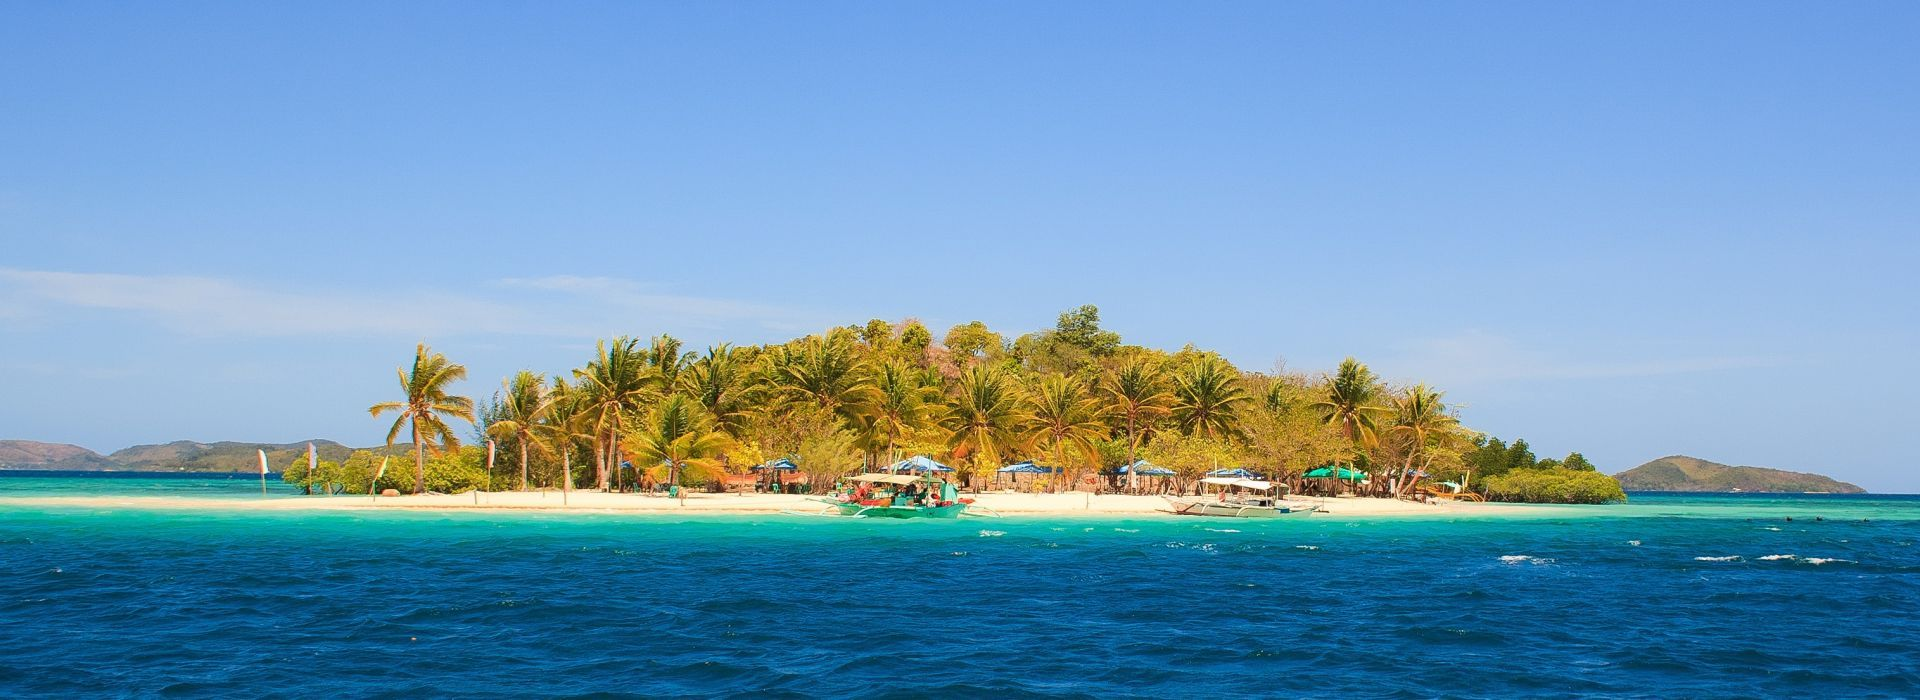 Snorkeling Tours in Philippines